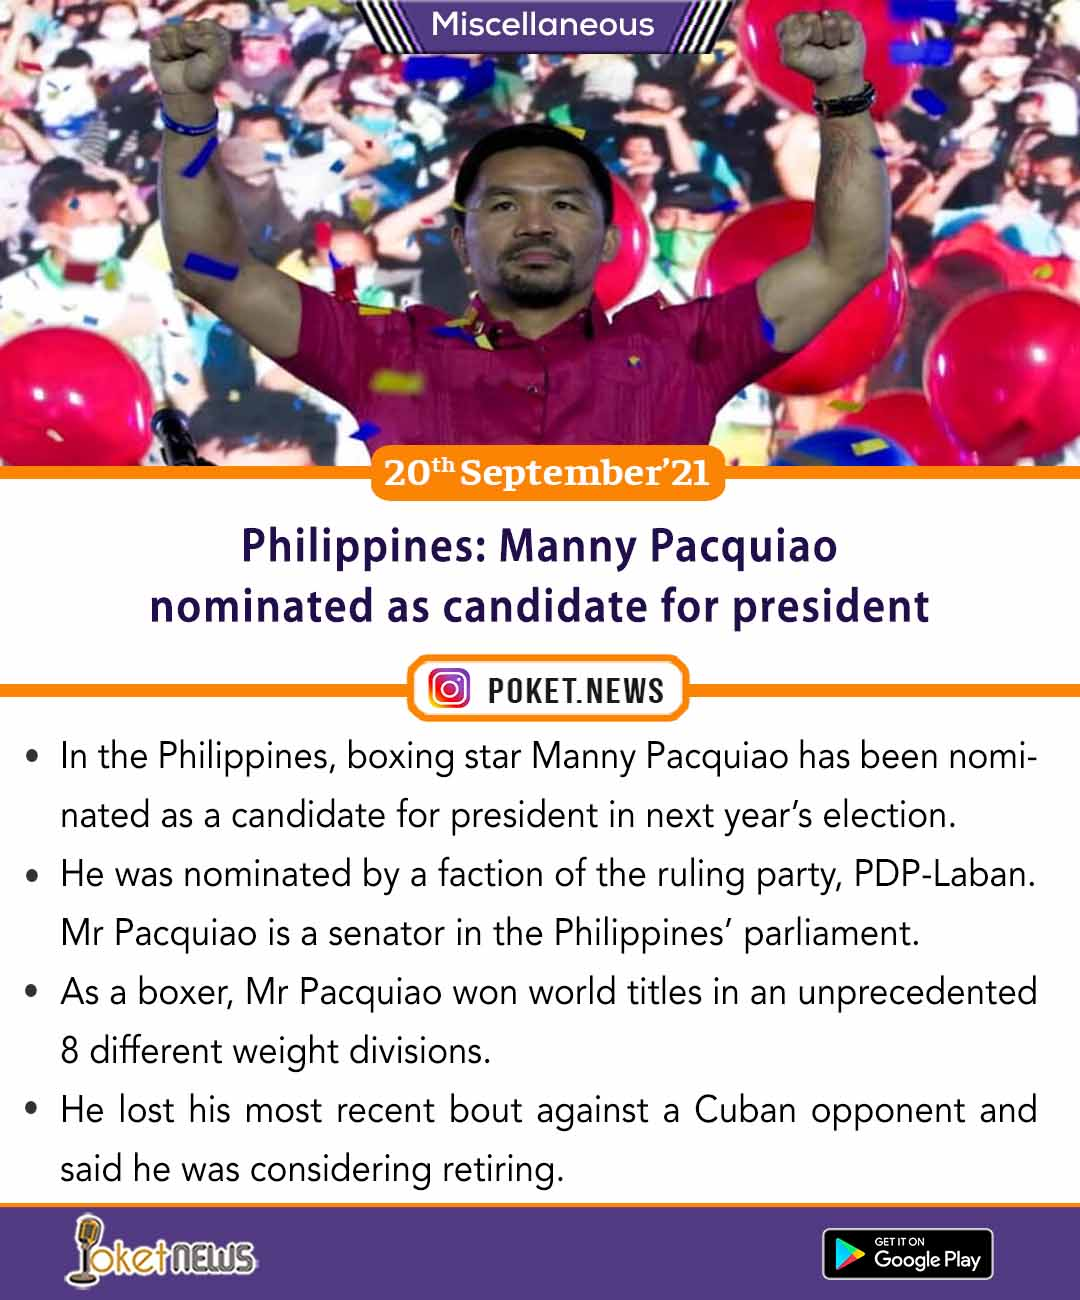 Philippines: Manny Pacquiao nominated as candidate for president